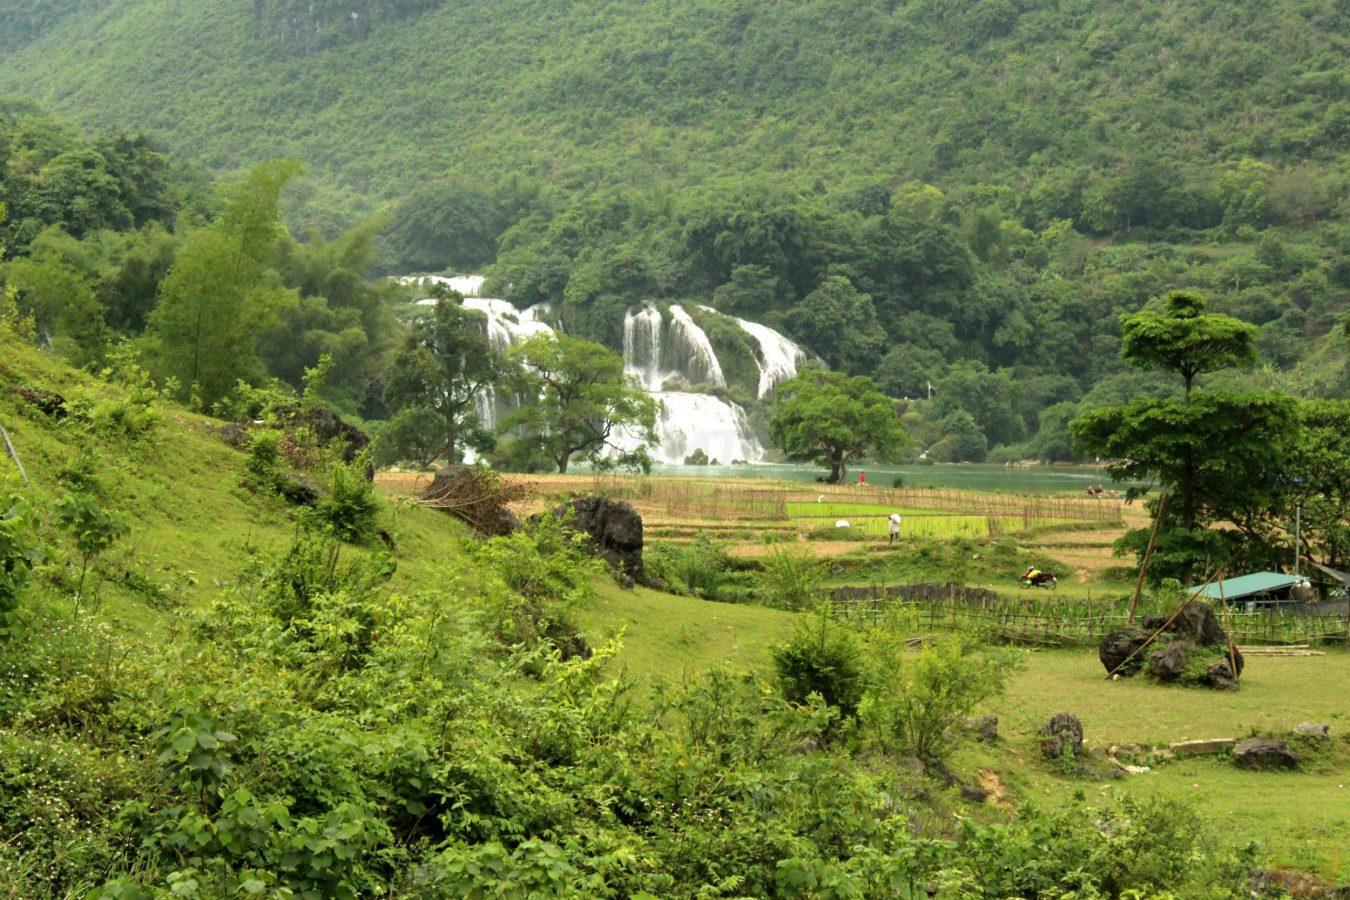 Approaching Ban Gioc waterfall